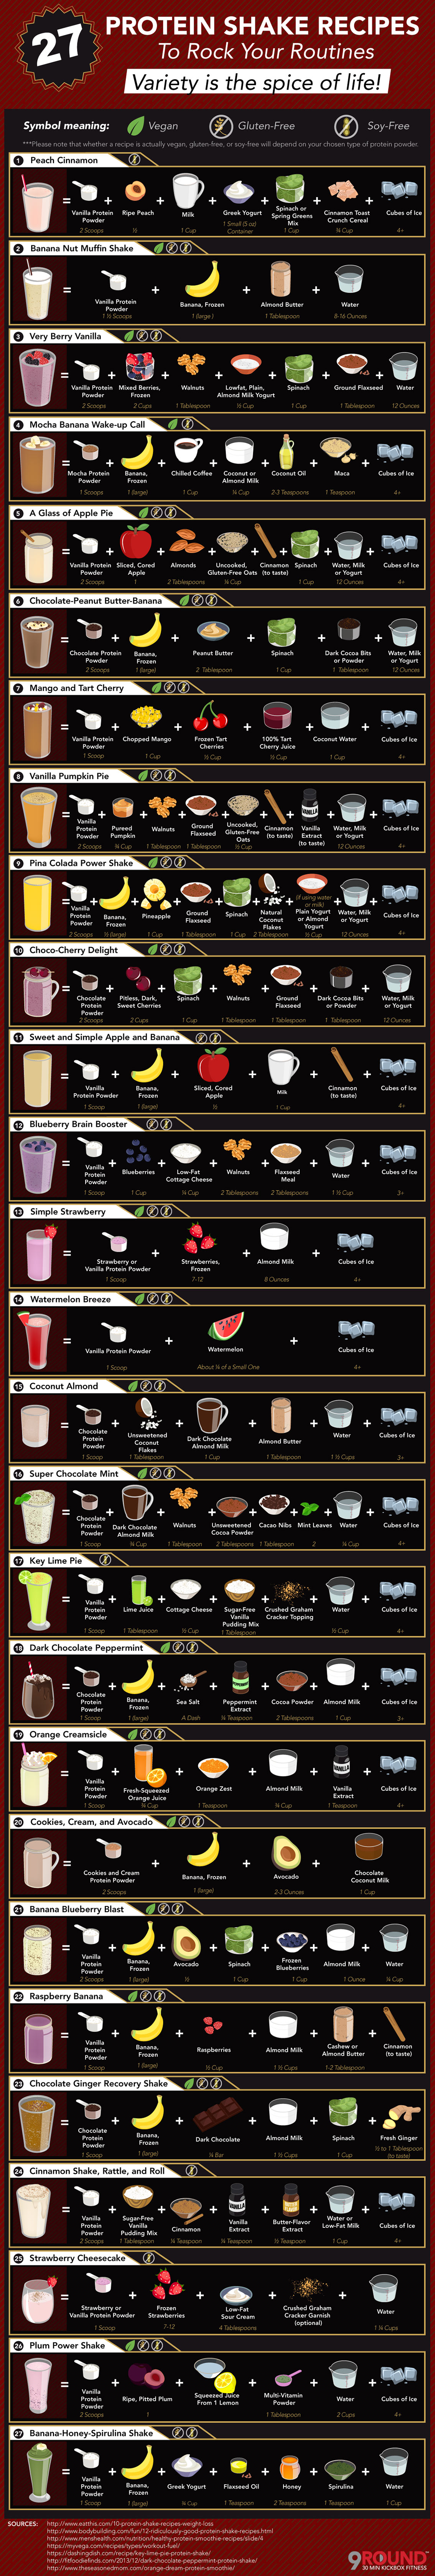 Gluten-Free and Soy-Free Protein Shake Recipes - Food Infographic